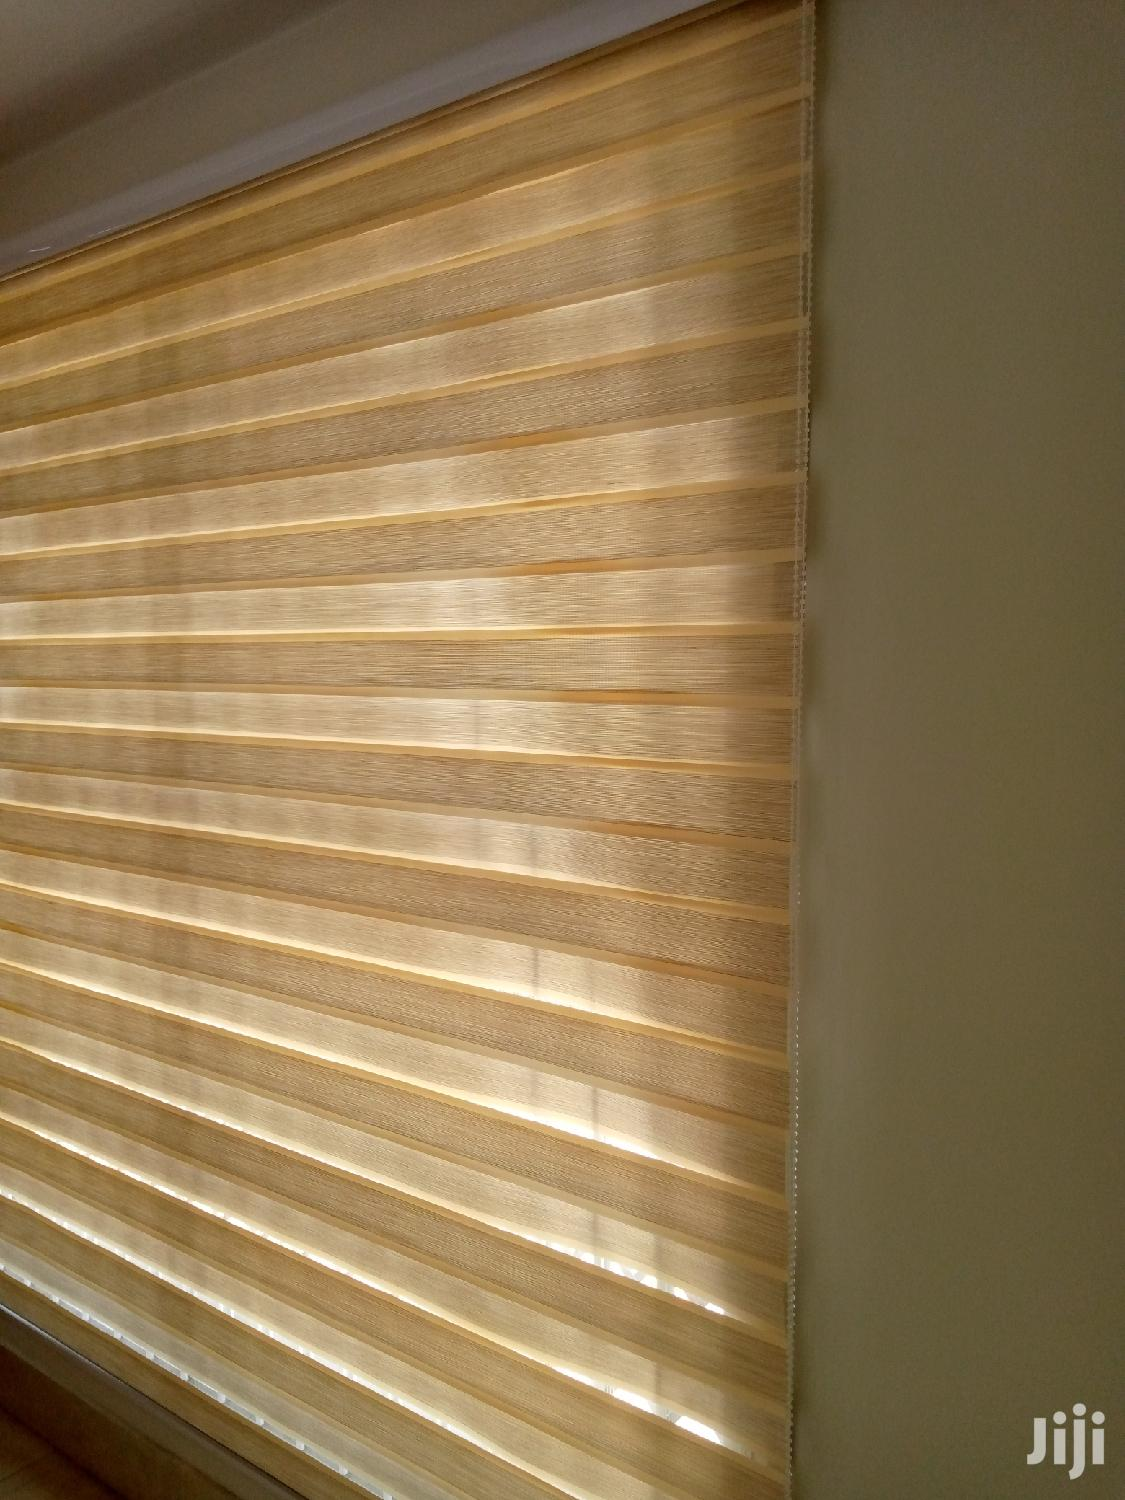 Classy Zebra Blinds   Home Accessories for sale in Roman Ridge, Greater Accra, Ghana